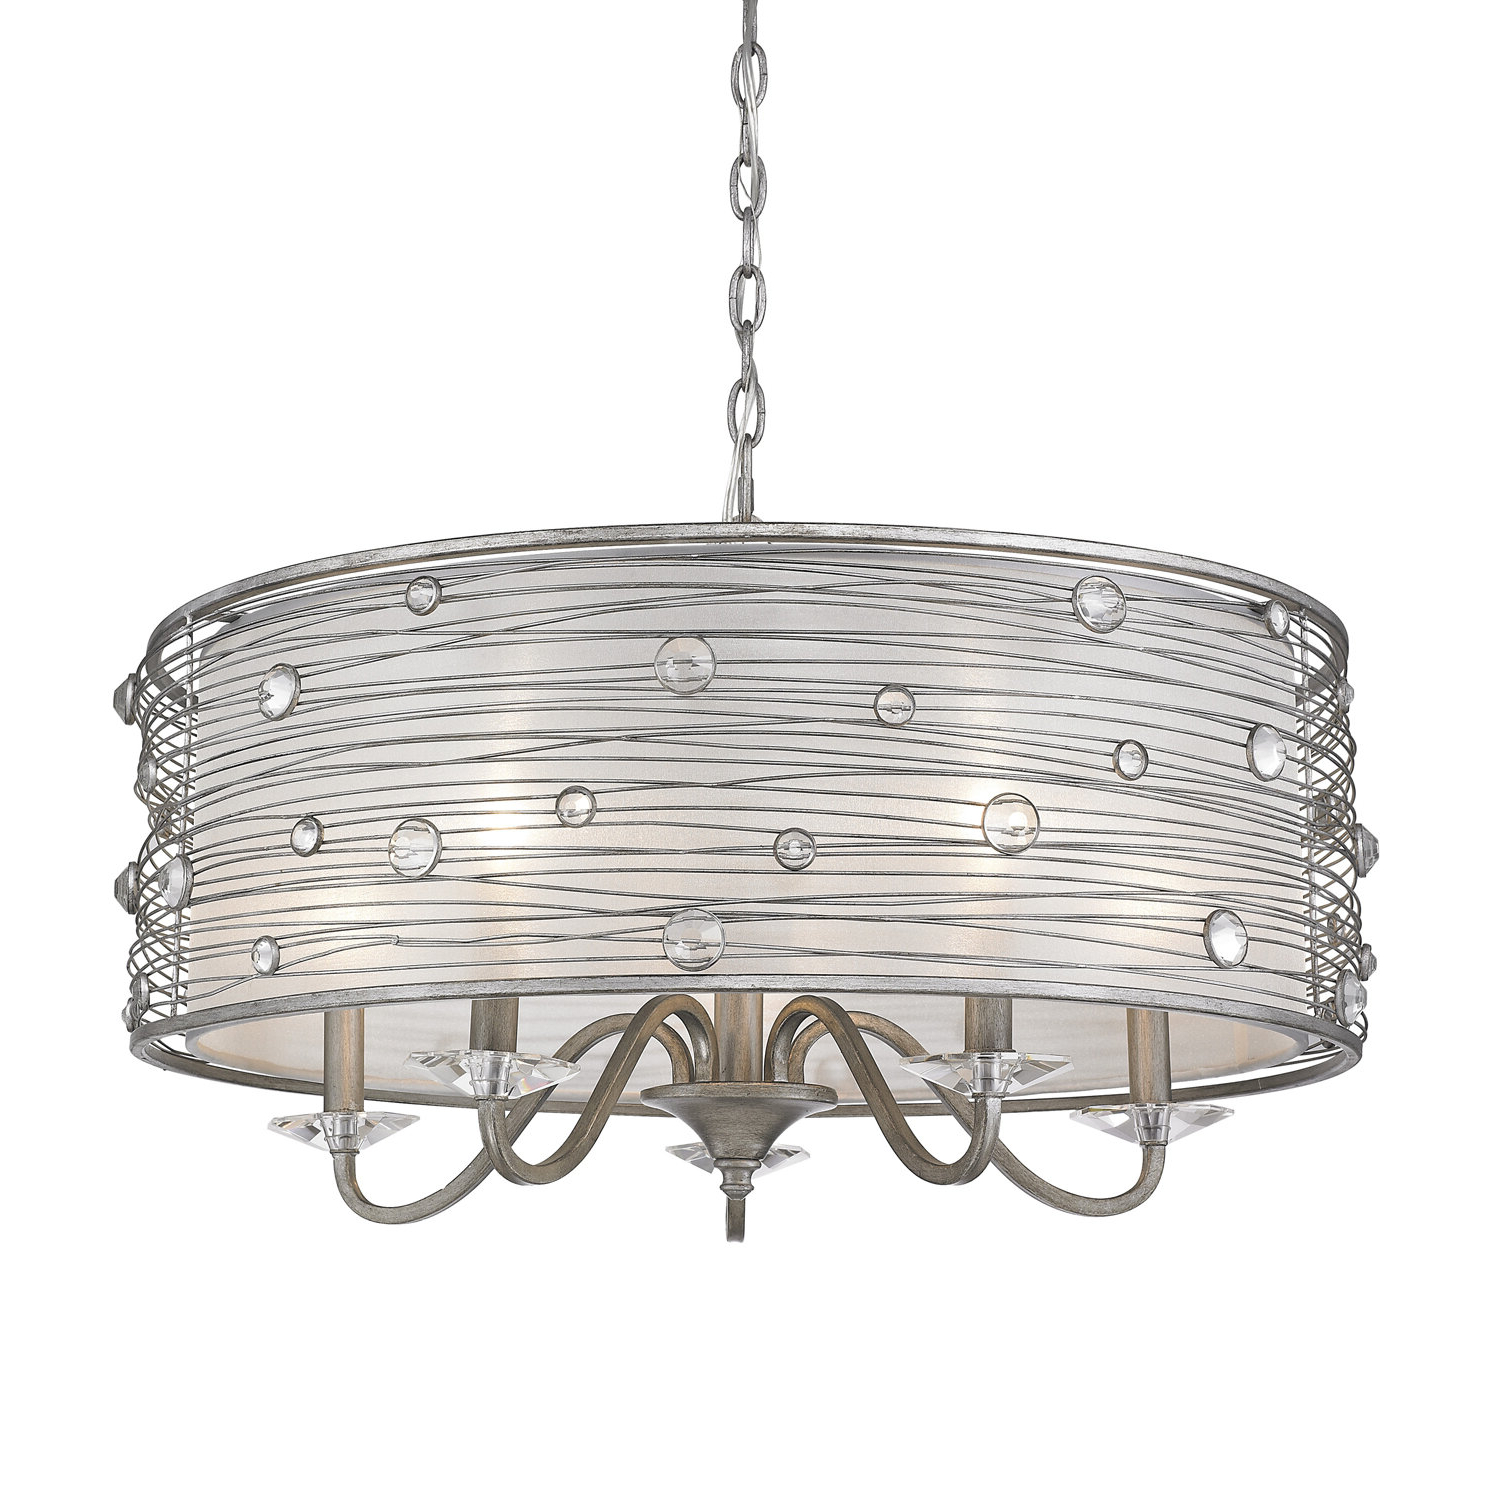 Hermione 5-Light Drum Chandelier within Best and Newest Abel 5-Light Drum Chandeliers